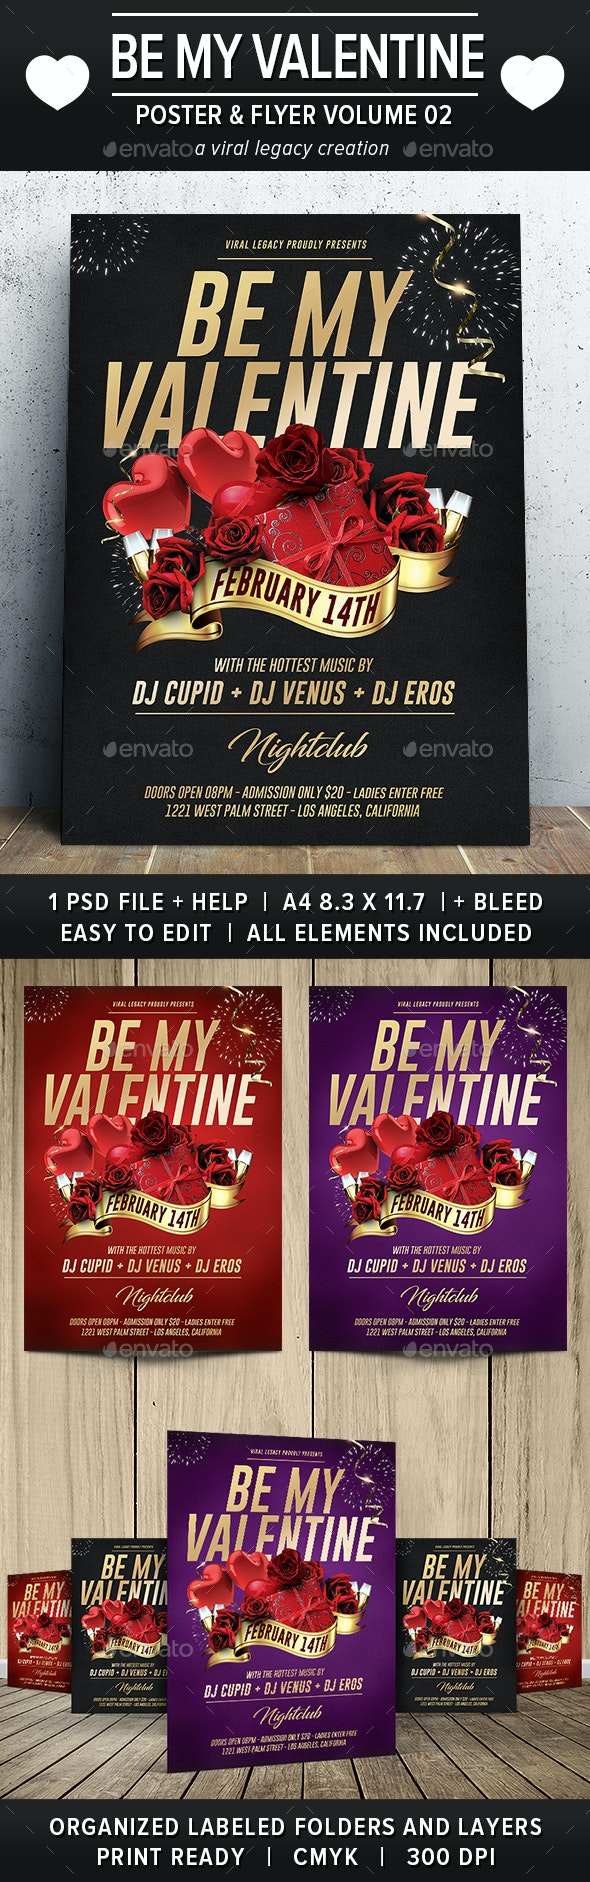 Be My Valentine Poster / Flyer V02 - Events Flyers